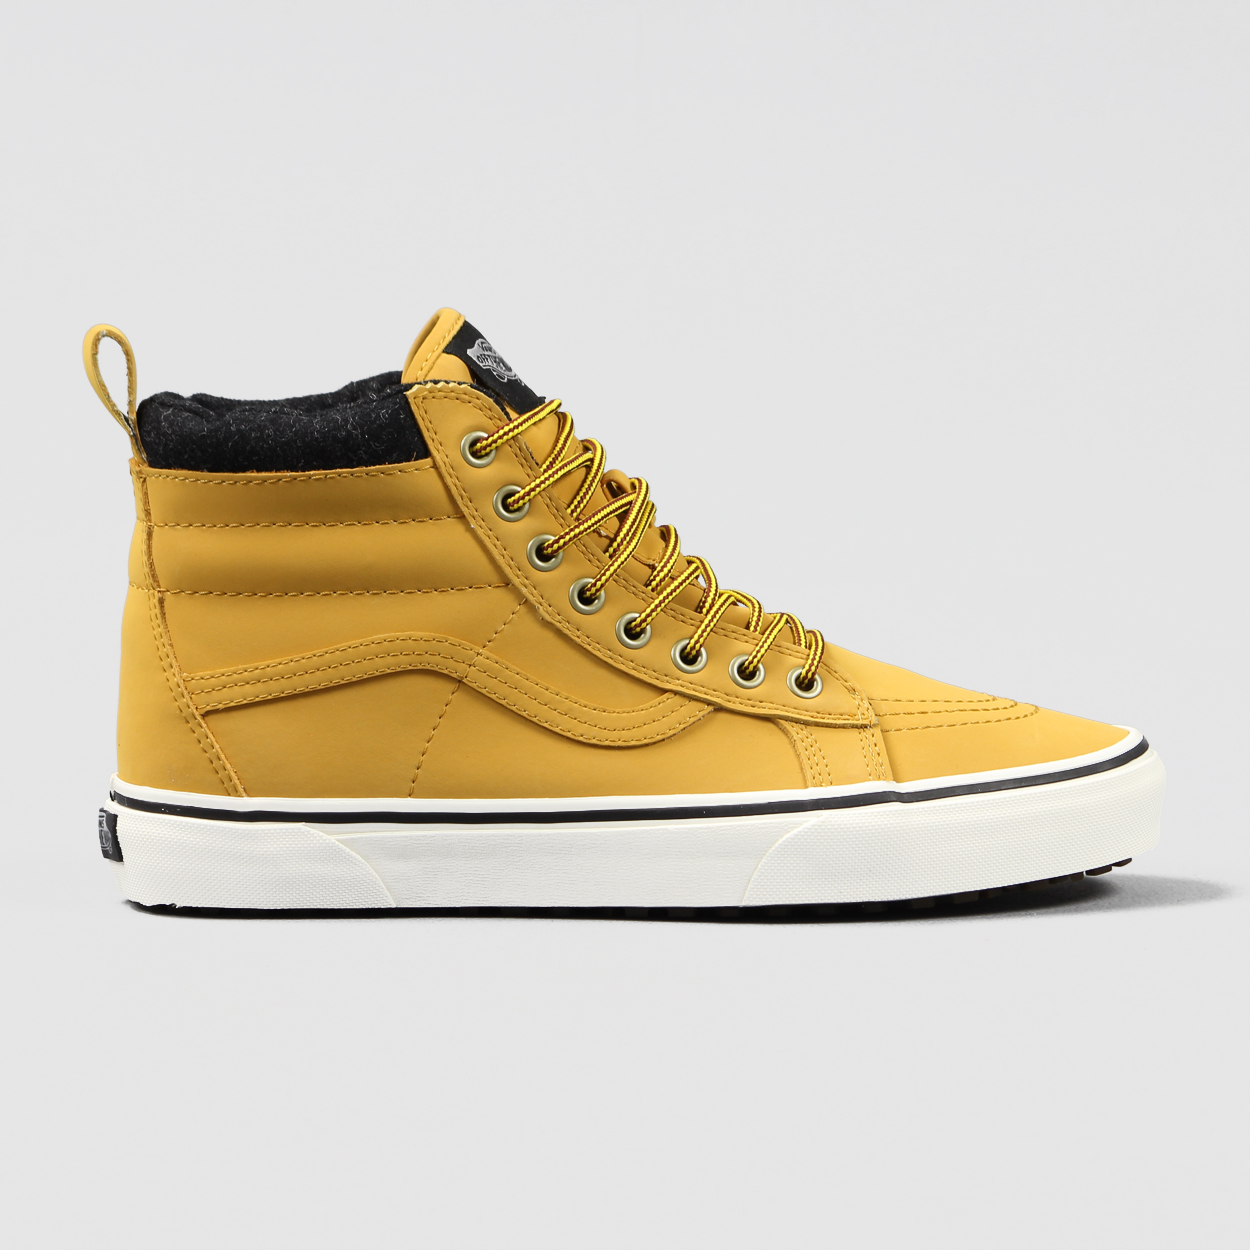 3044ebe5f1 Vans Mountain Edition Mens Skate High Top Trainers Yellow Shoes £52.50